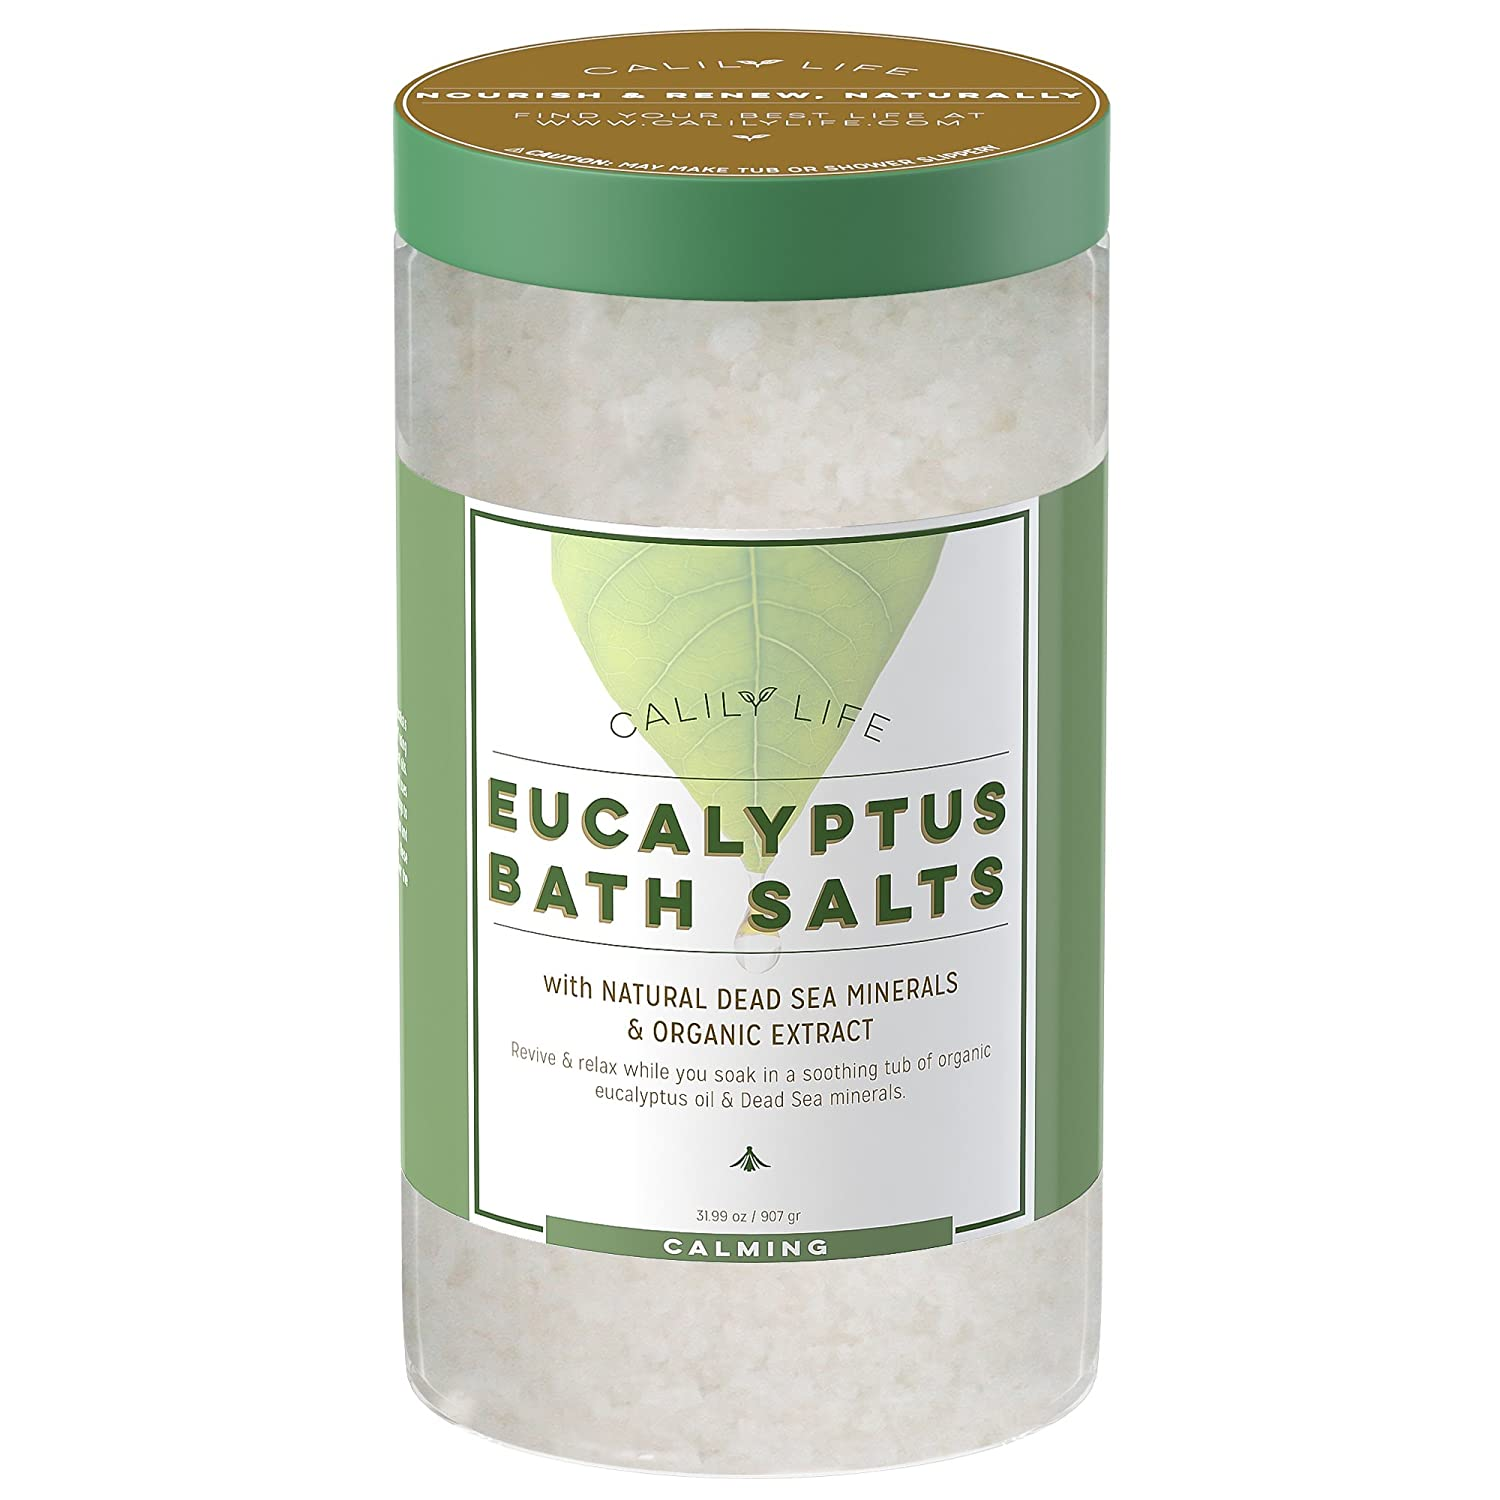 Calily Life Organic Dead Sea Salt